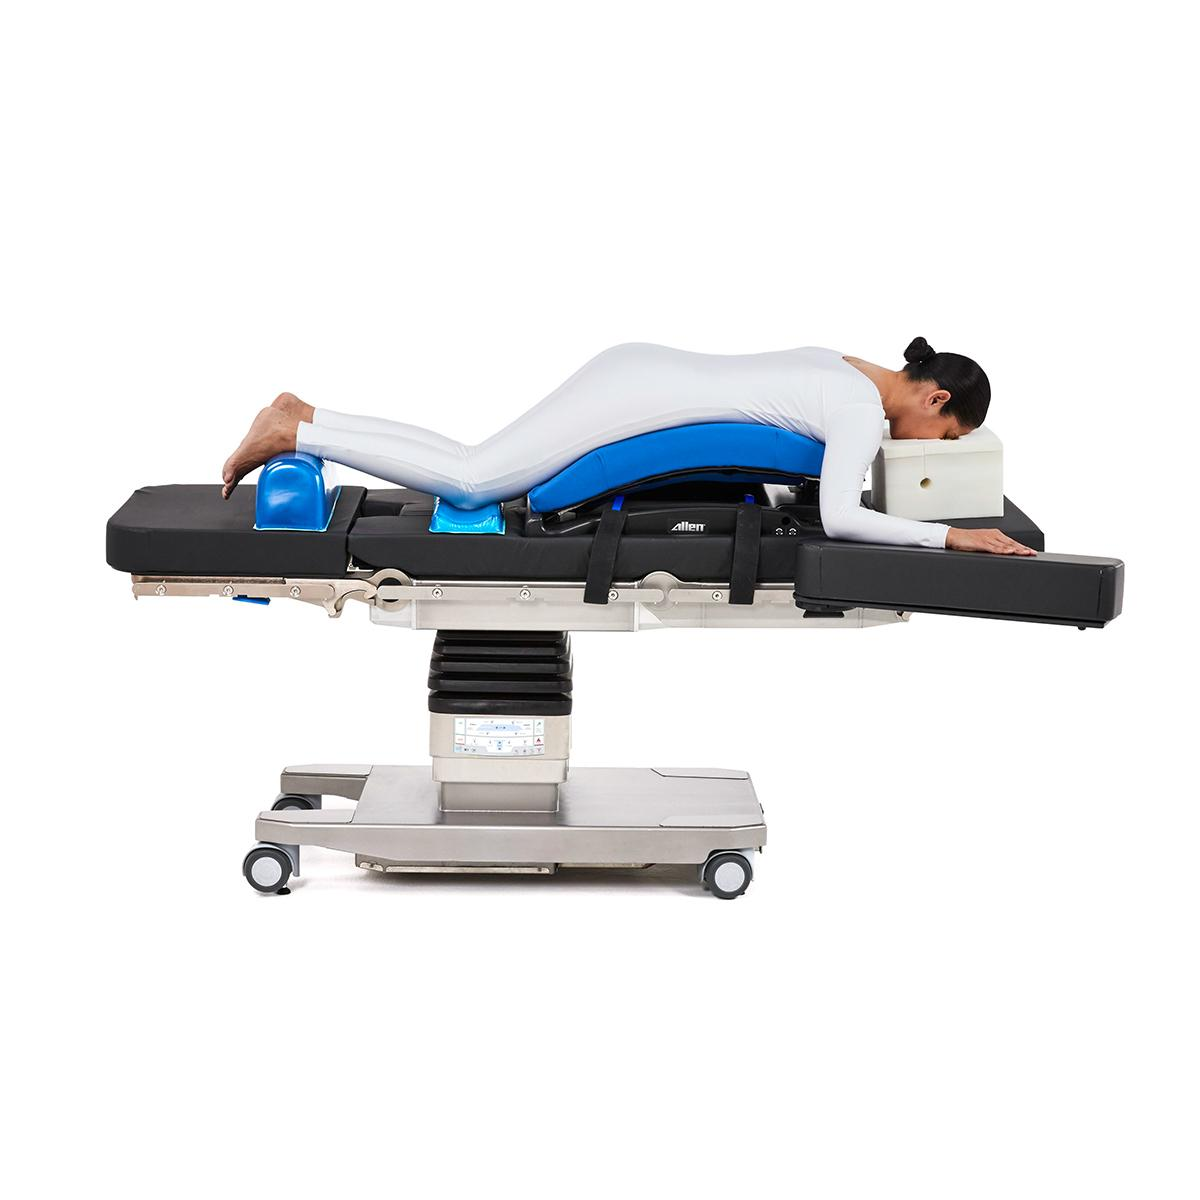 Allen Bow Frame in use, patient prone